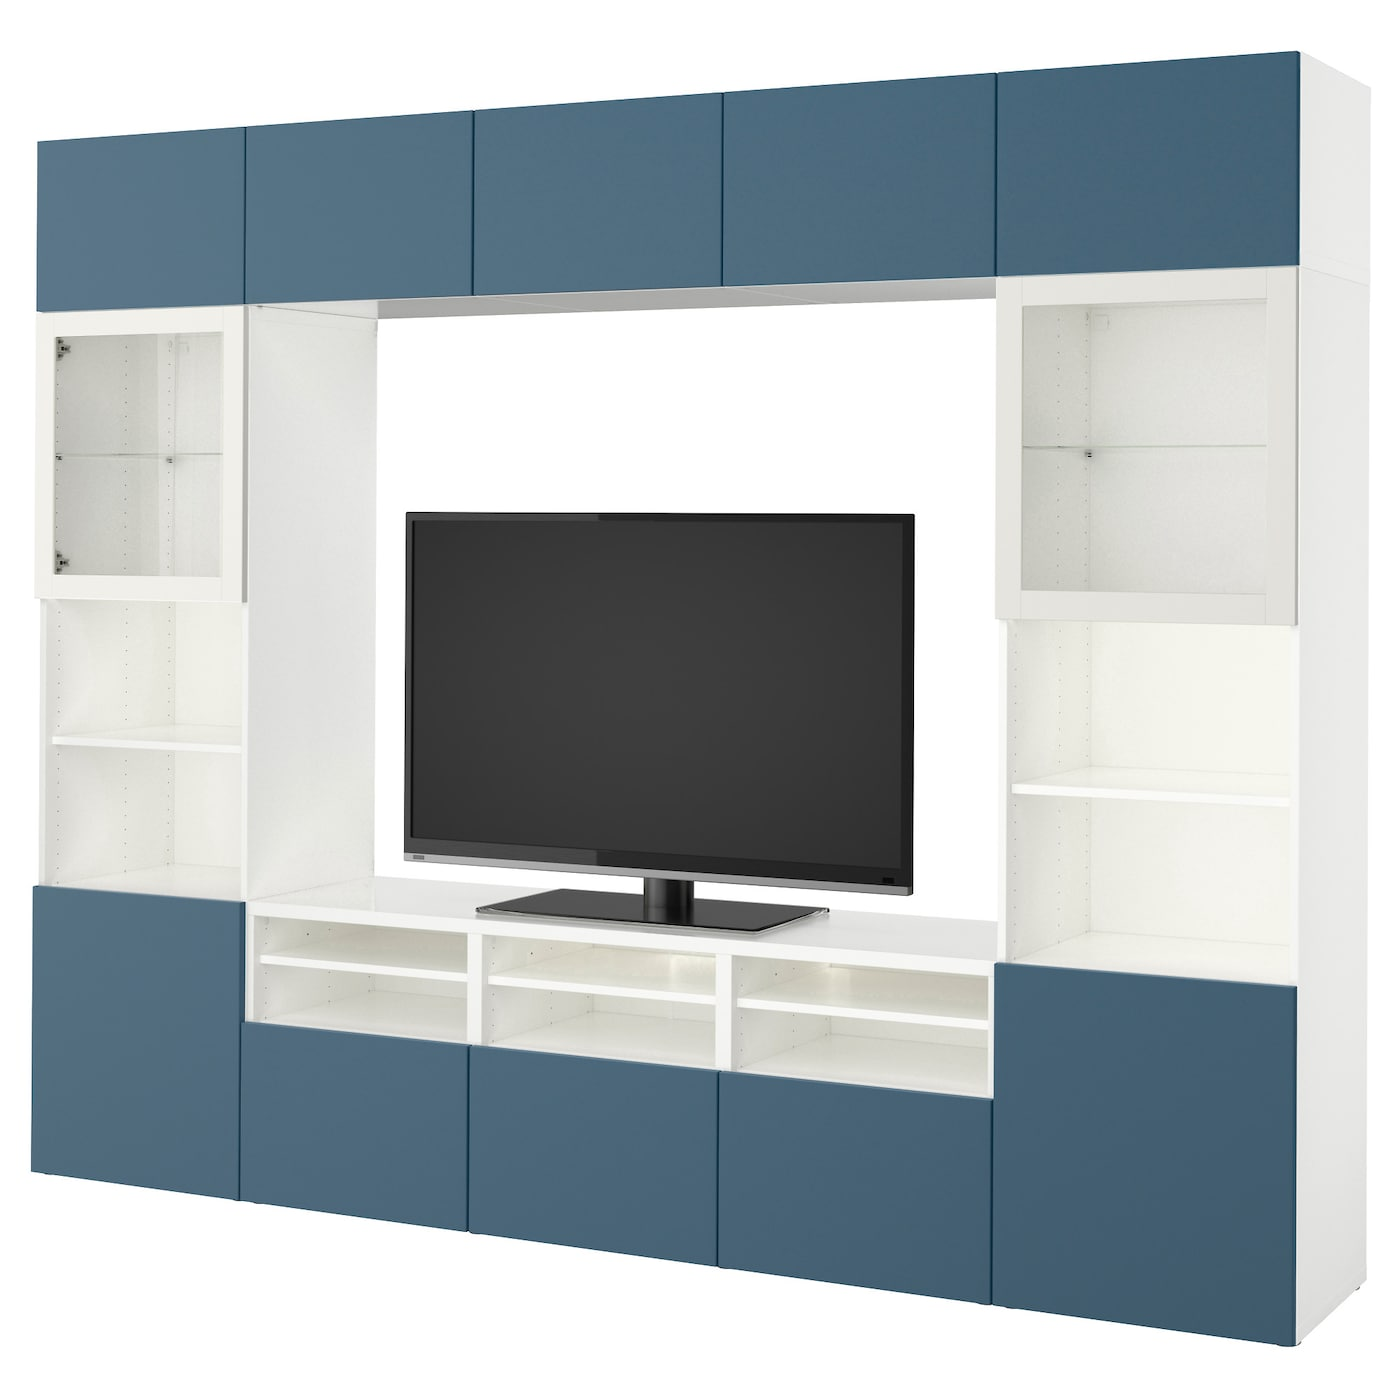 best combinaison rangt tv vitrines blanc valviken bleu. Black Bedroom Furniture Sets. Home Design Ideas